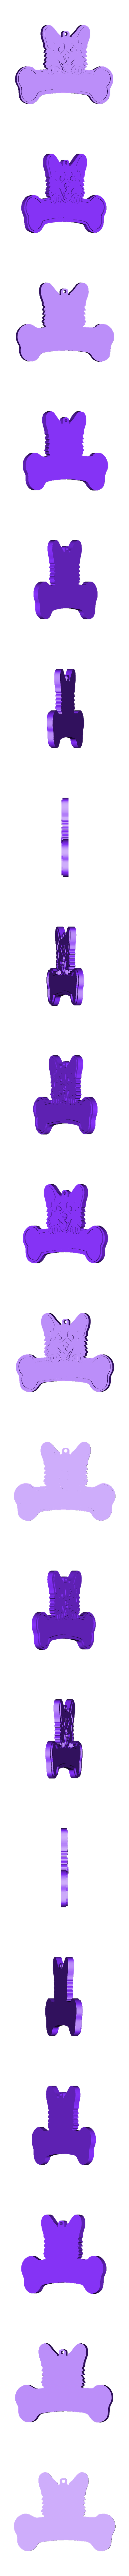 Corgi.stl Download STL file Set x24 Dog tags ( work from home) • 3D printing template, 3dokinfo